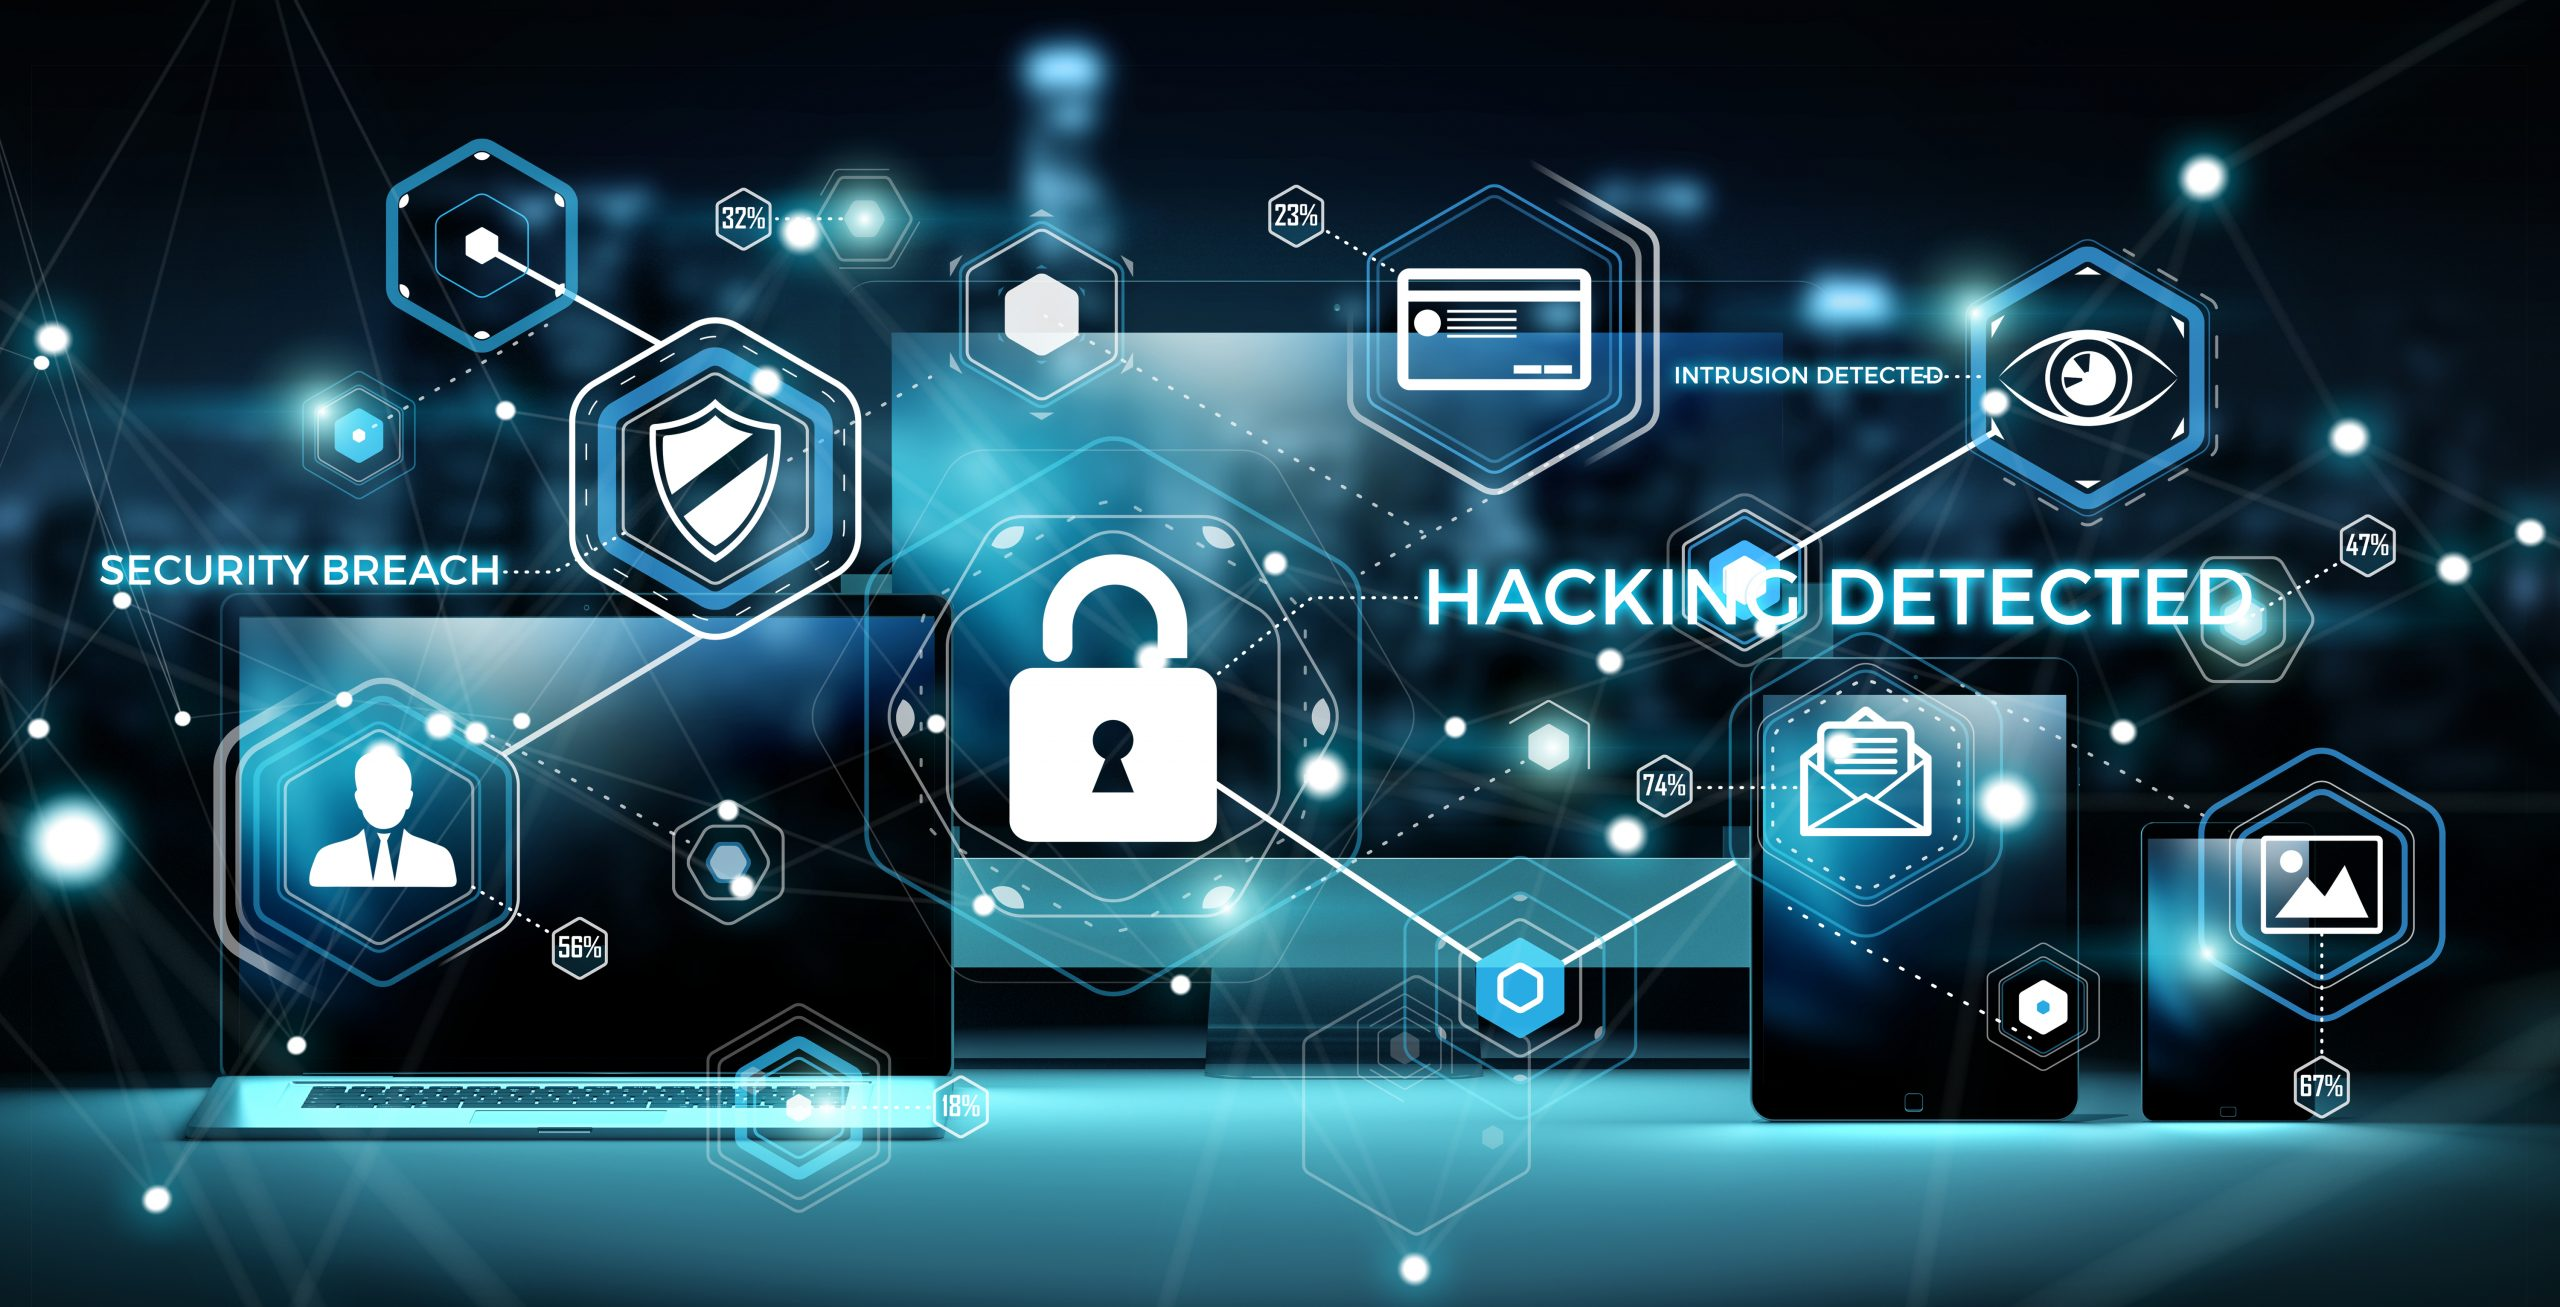 cybersecurity with word written in white saying security breach and hacking detected, blue lines and black background